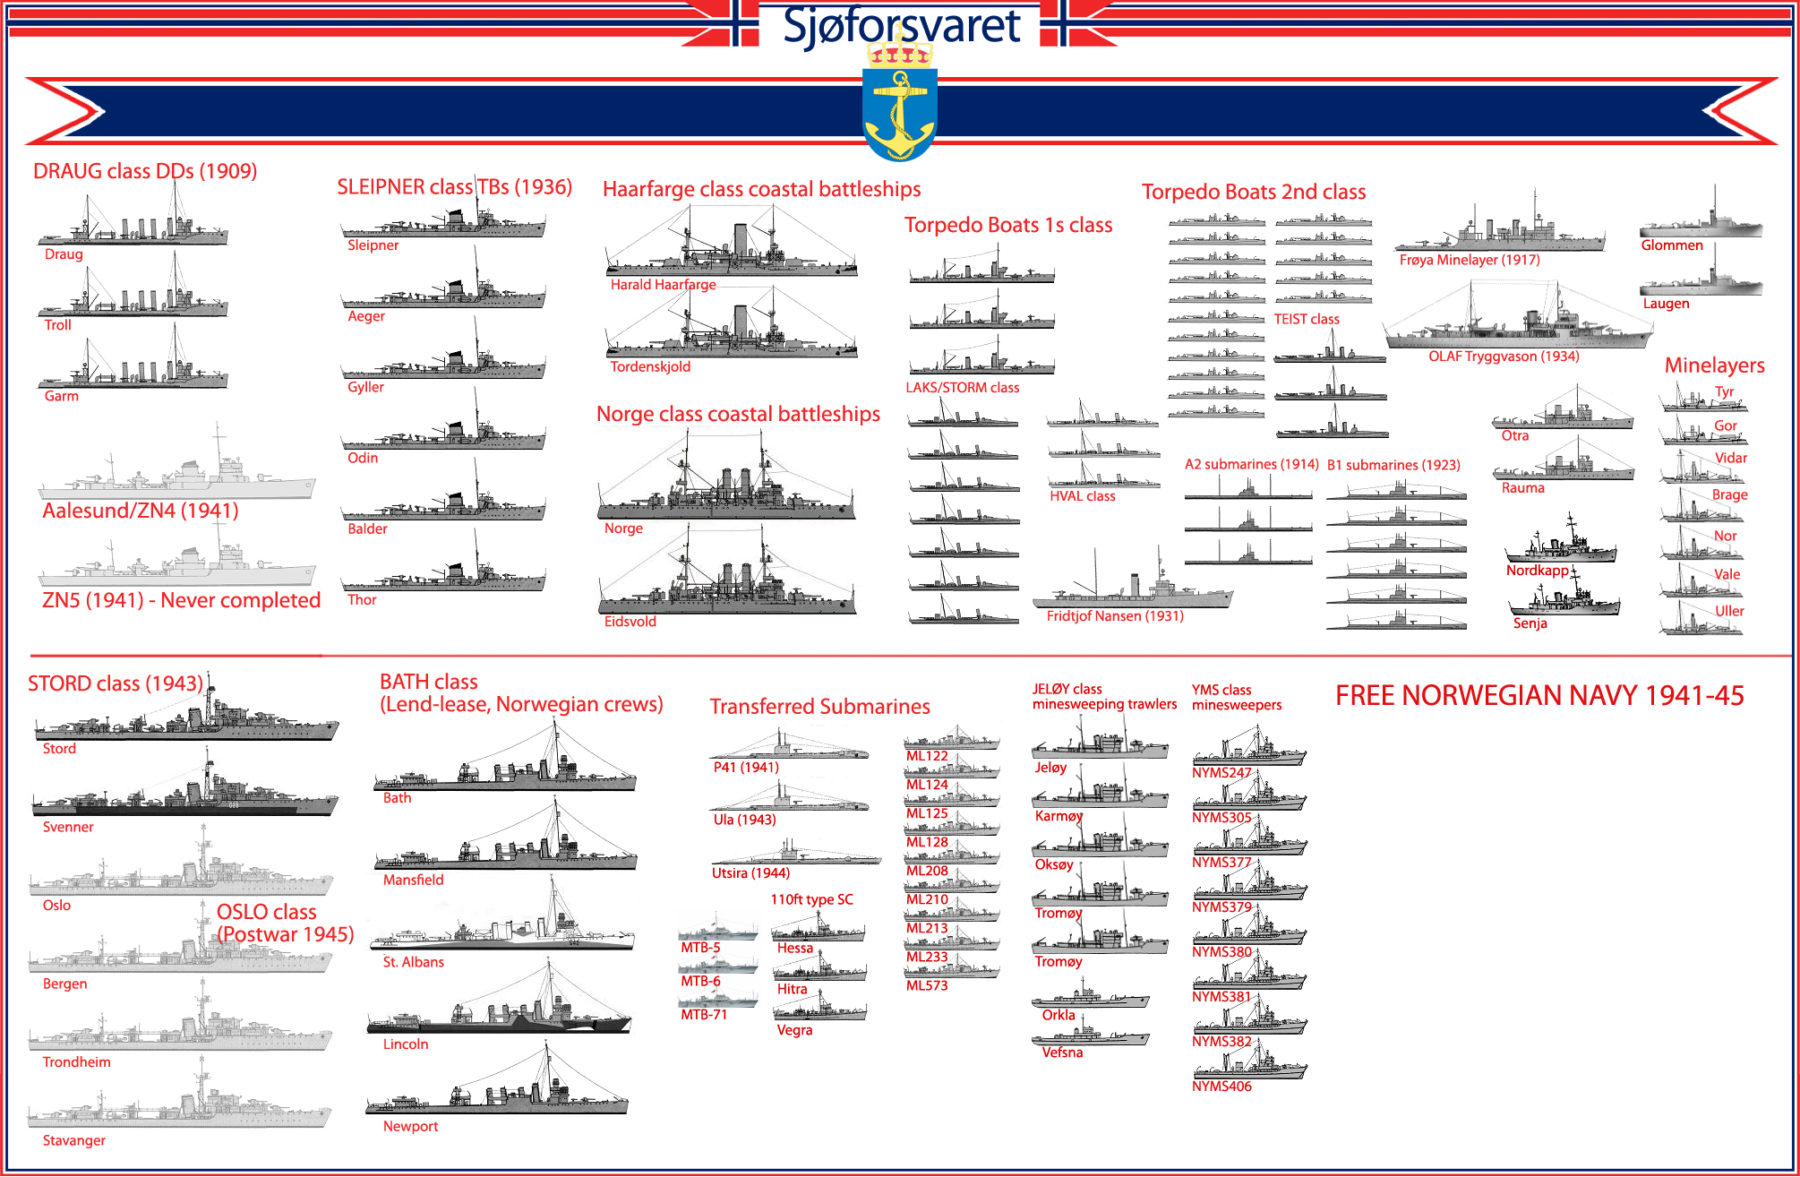 Poster of the Norwegian Royal Navy